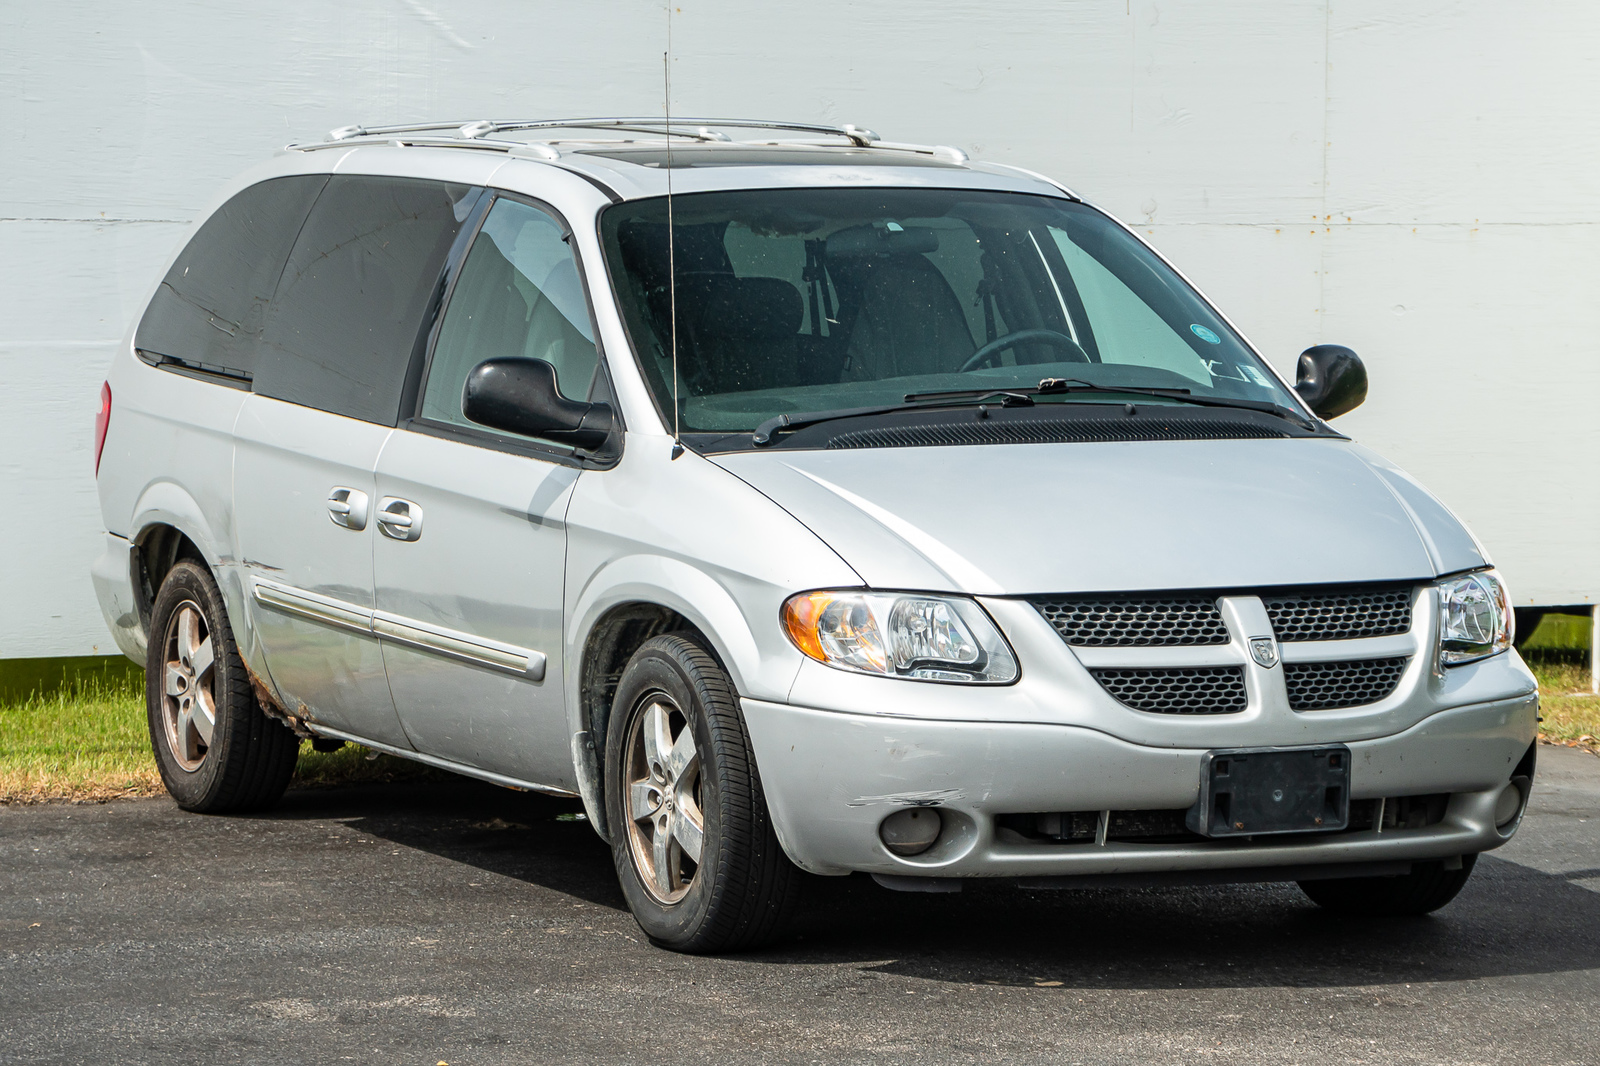 Pre-Owned 2004 Dodge Caravan 4dr Grand SXT 119 WB